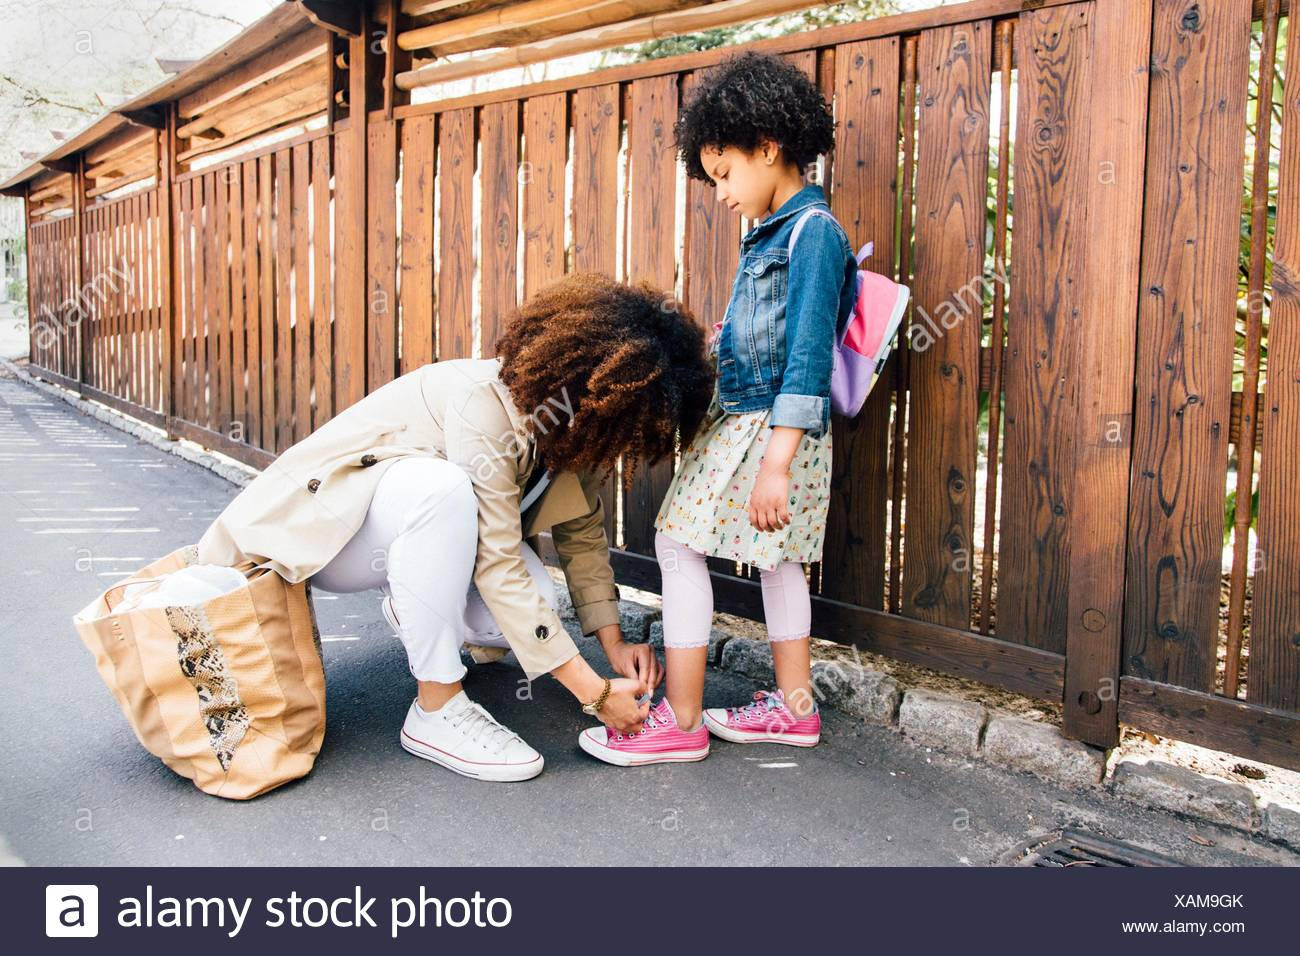 Mother kneeling by fence tying daughters shoelace - Stock Image